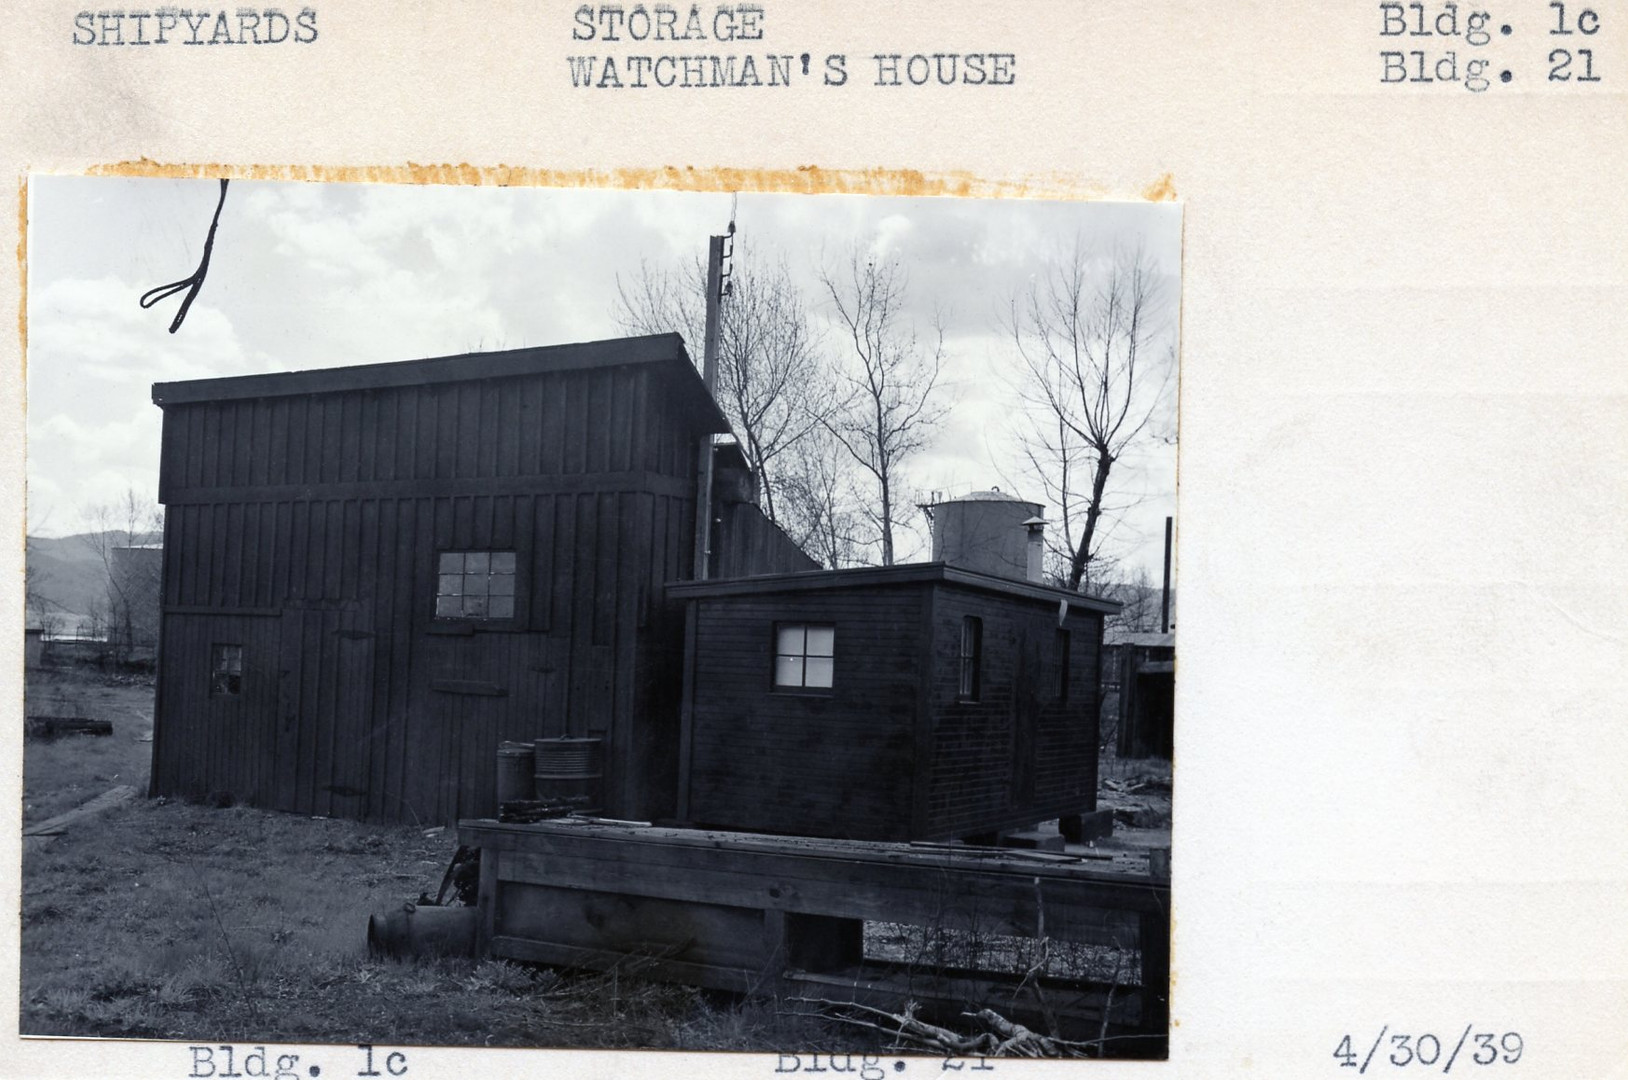 Shipyards, Storage, Building 1c, Watchman's House building 21, 4/30/39